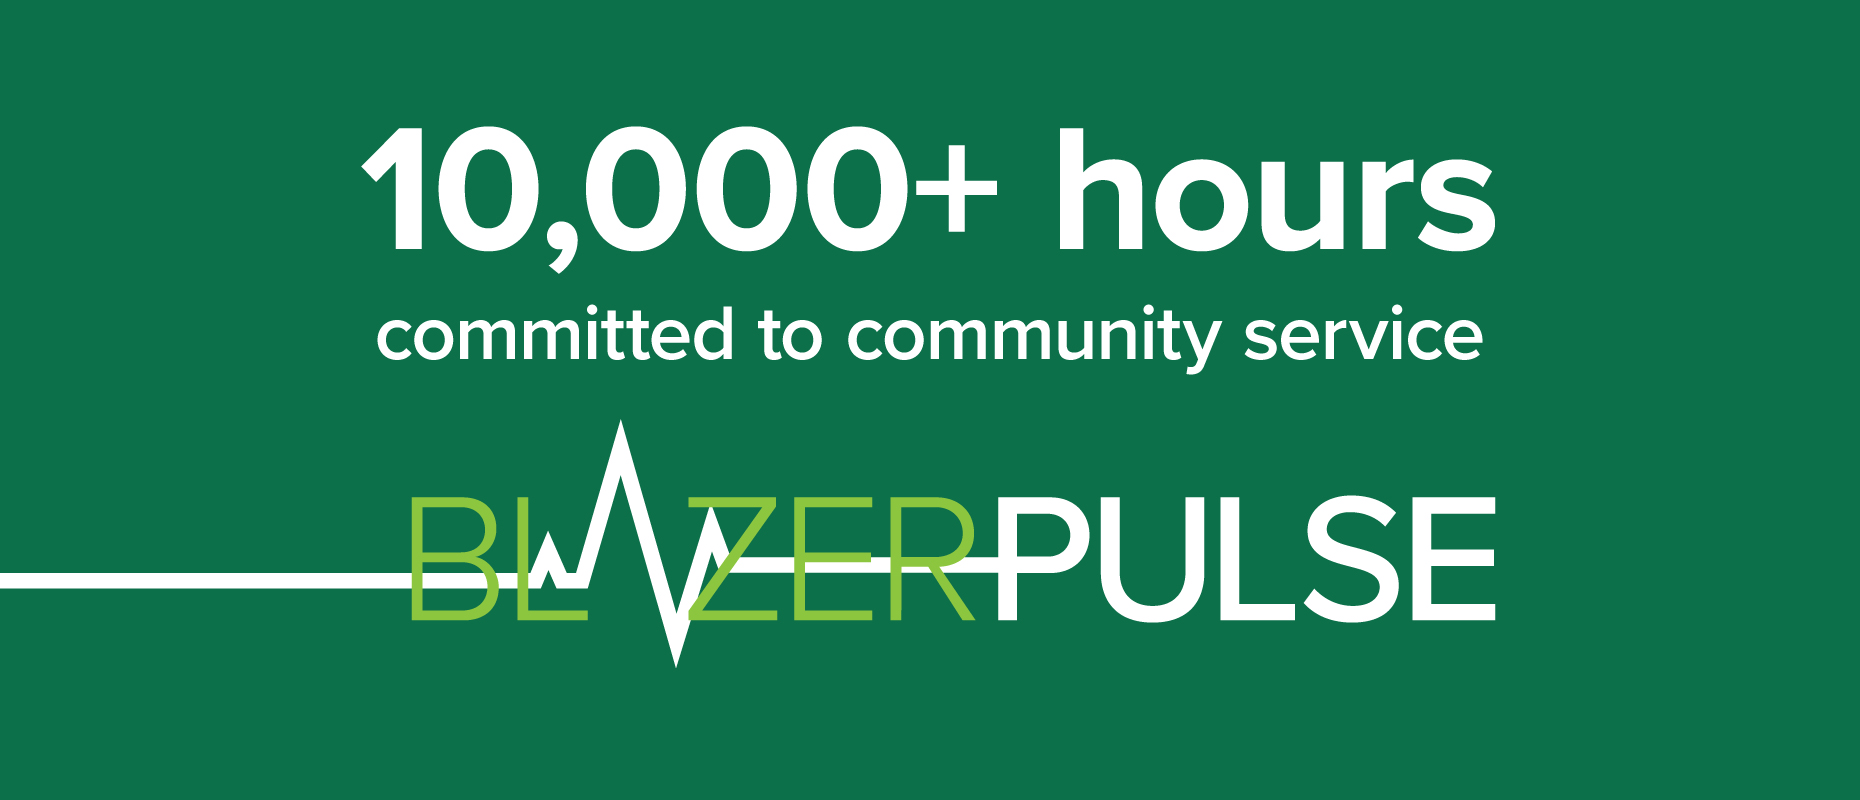 UAB's BlazerPulse reaches milestone of 10,000 hours committed to community service